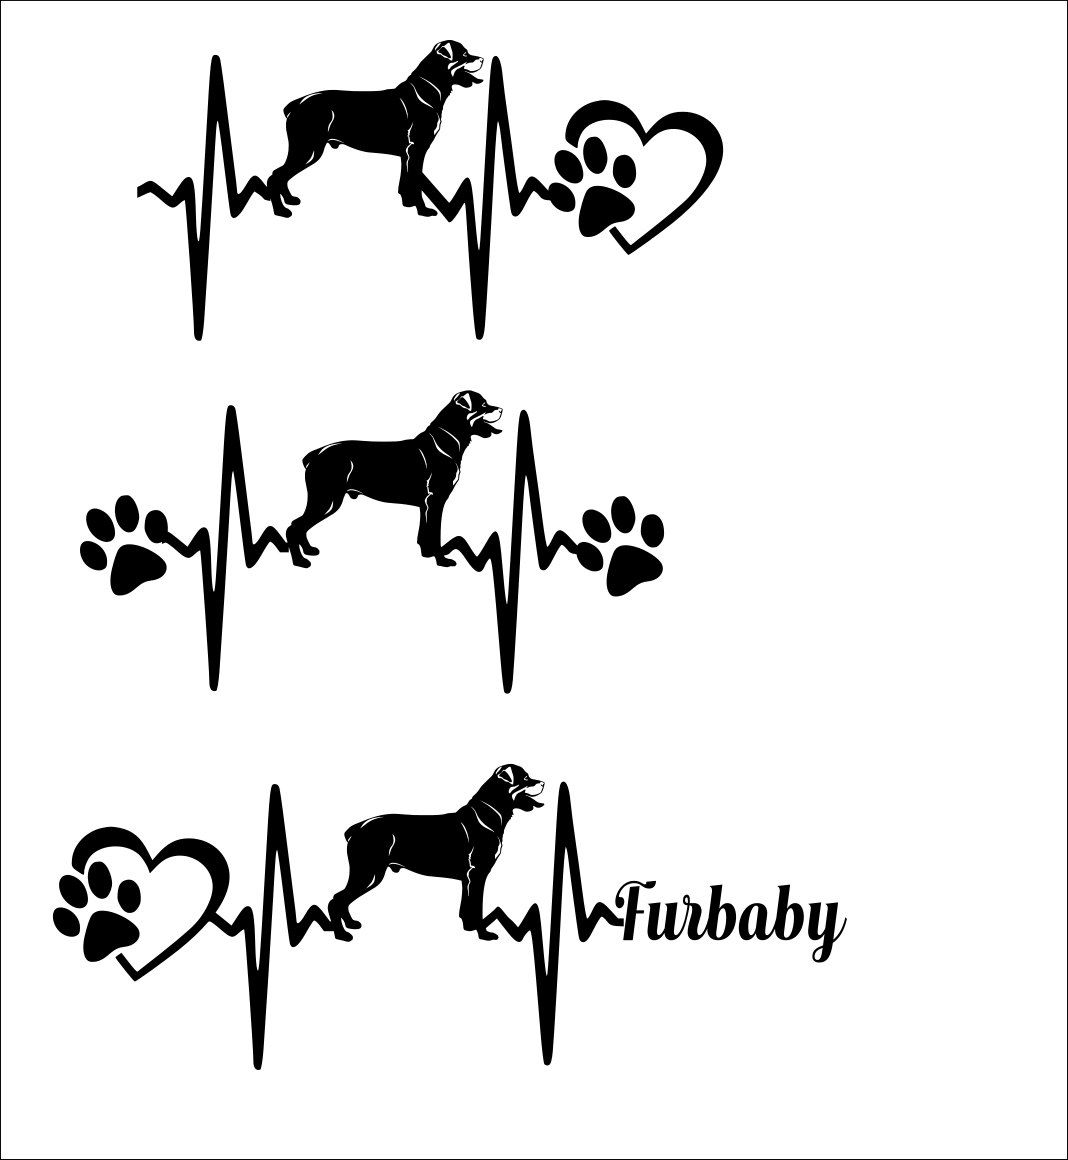 Svg Cut File Rottweiler Heartbeat Paw With Heart